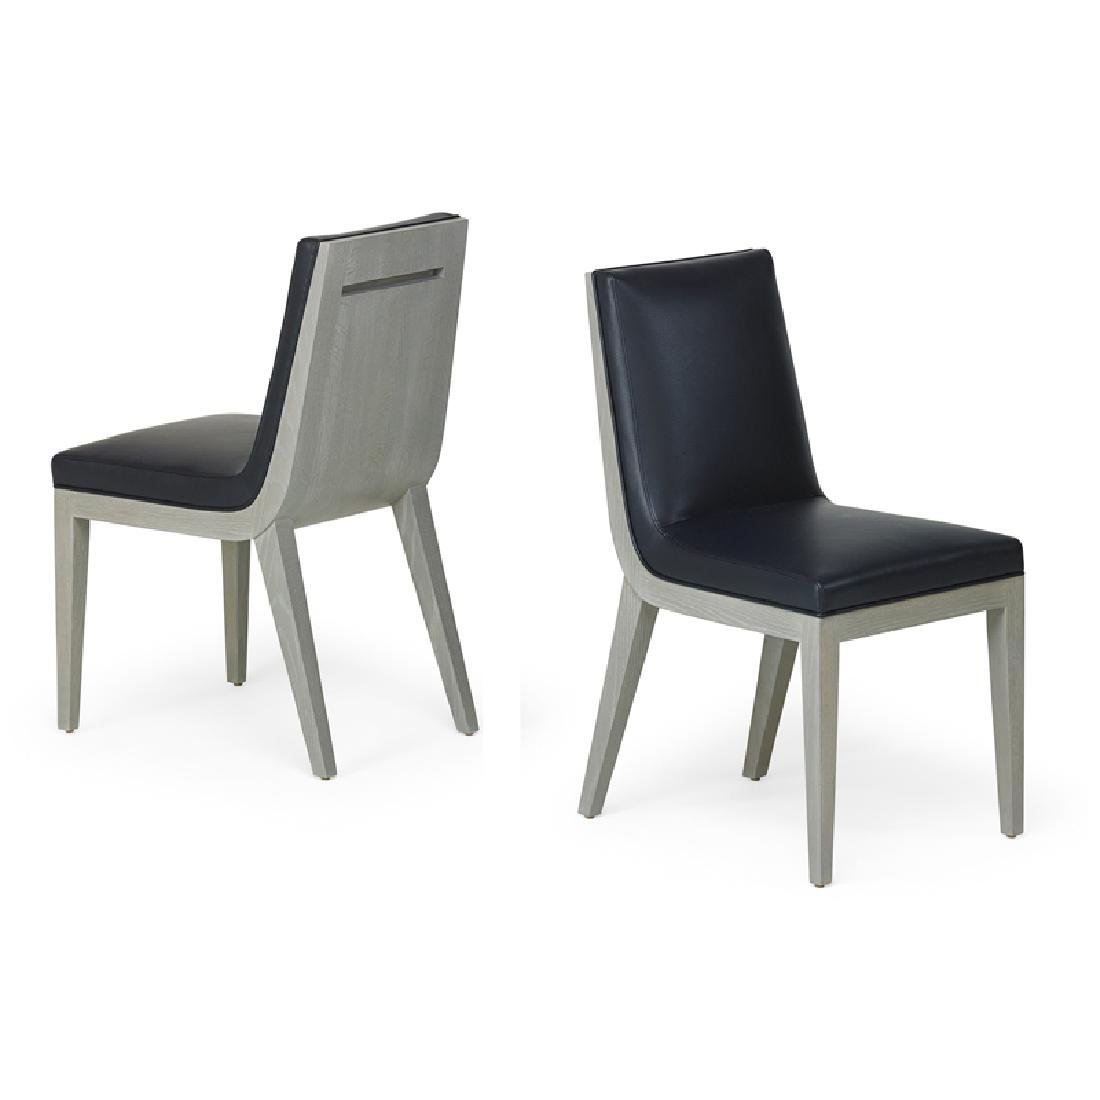 PATRICK NAGGAR; RALPH PUCCI Pair of side chairs - 2